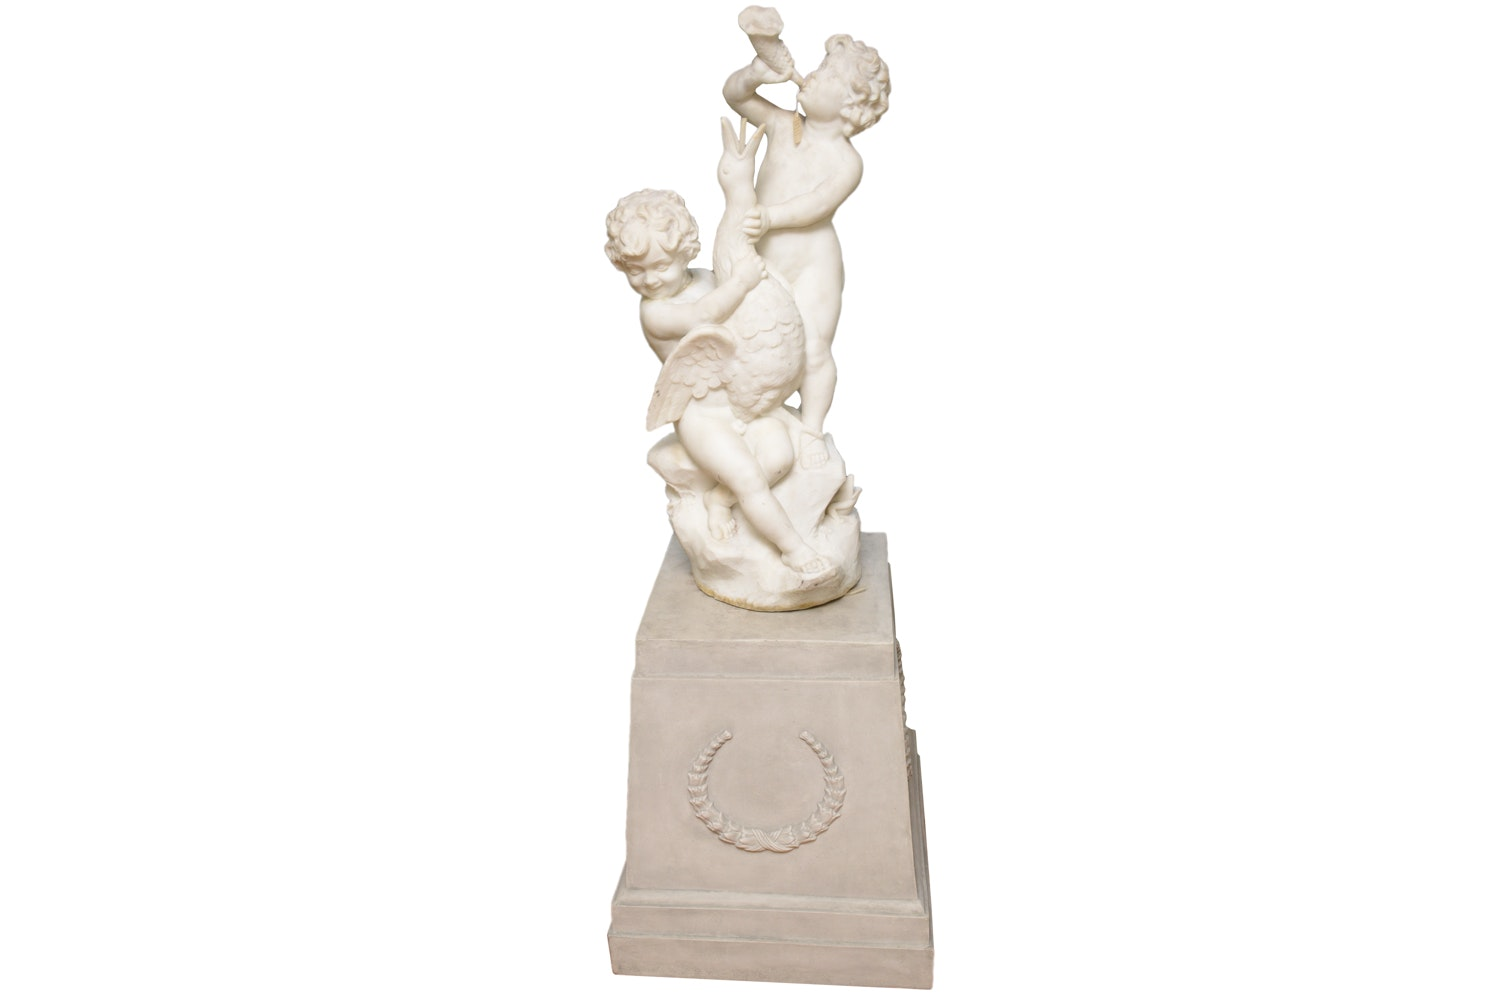 Marble Figural Sculpture with Pedestal Base